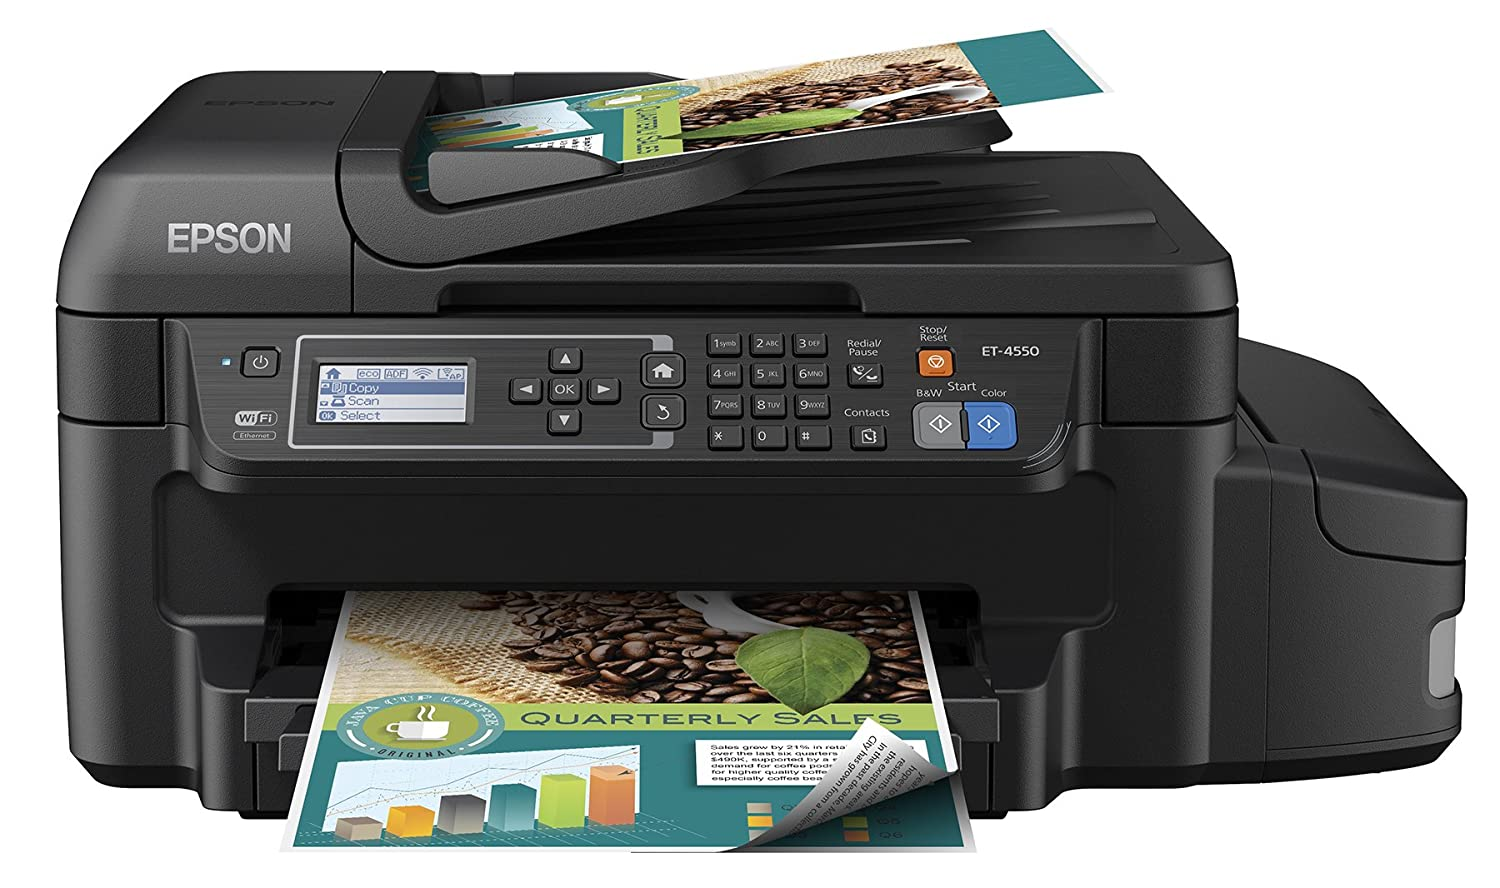 Color art printing anchorage - Amazon Com Epson Workforce Et 4550 Ecotank Wireless Color All In One Supertank Printer With Scanner Copier Fax Ethernet Wi Fi Wi Fi Direct